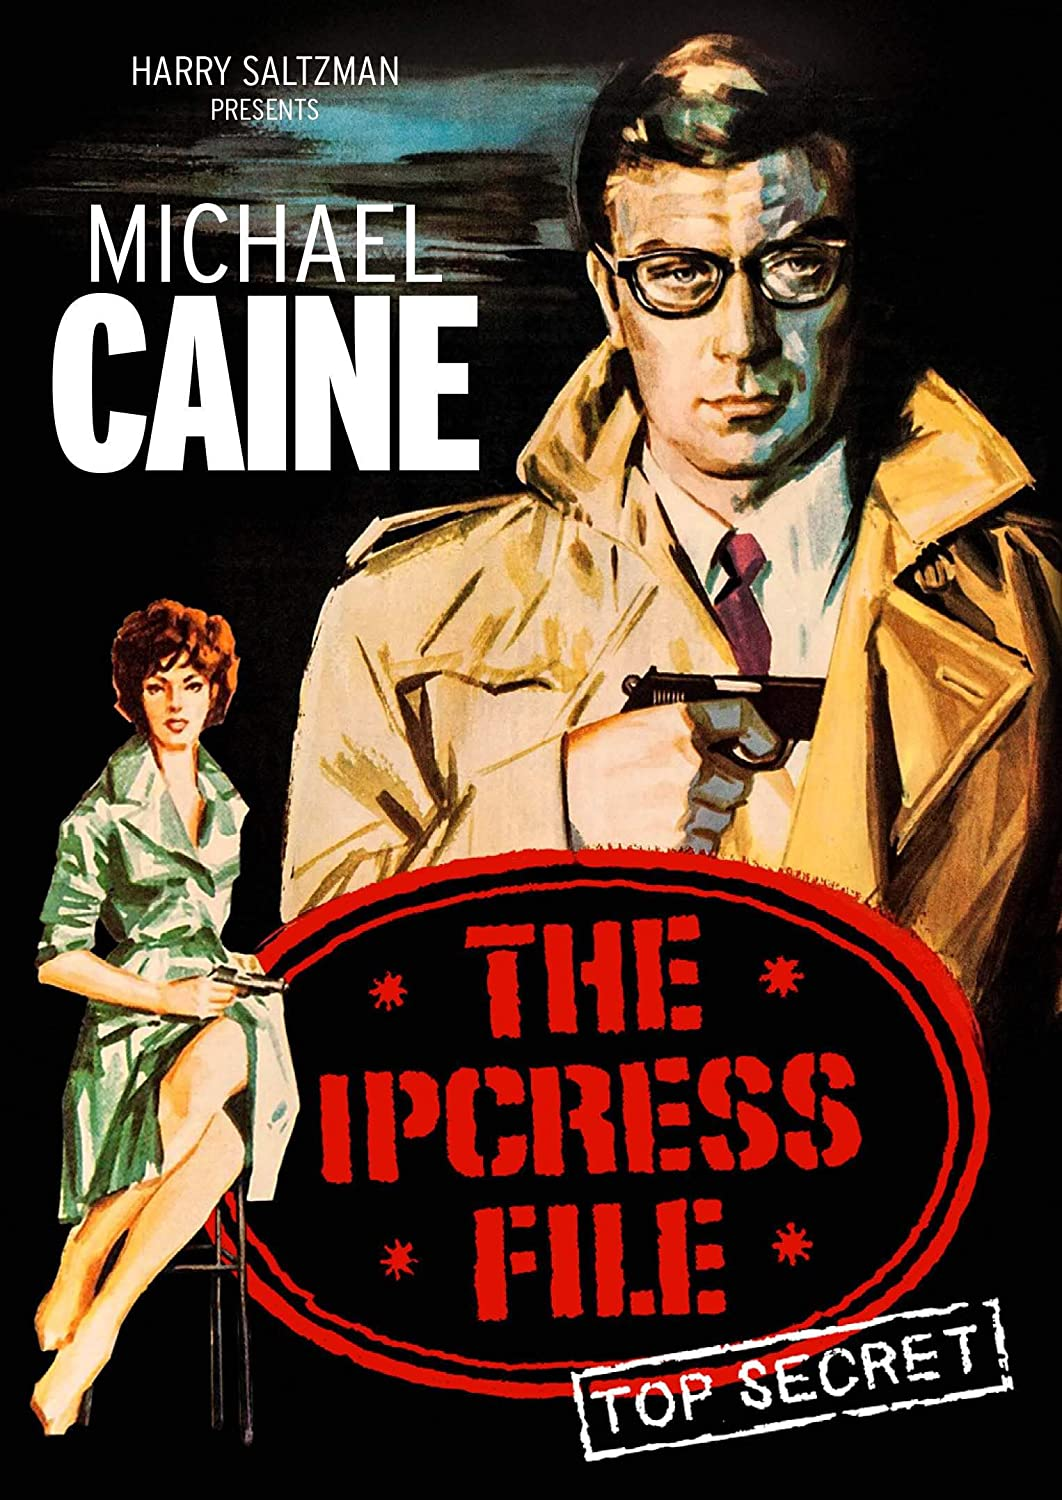 Amazoncom The Ipcress File Special Edition Michael Caine Nigel Green  Guy Doleman Movies  TV